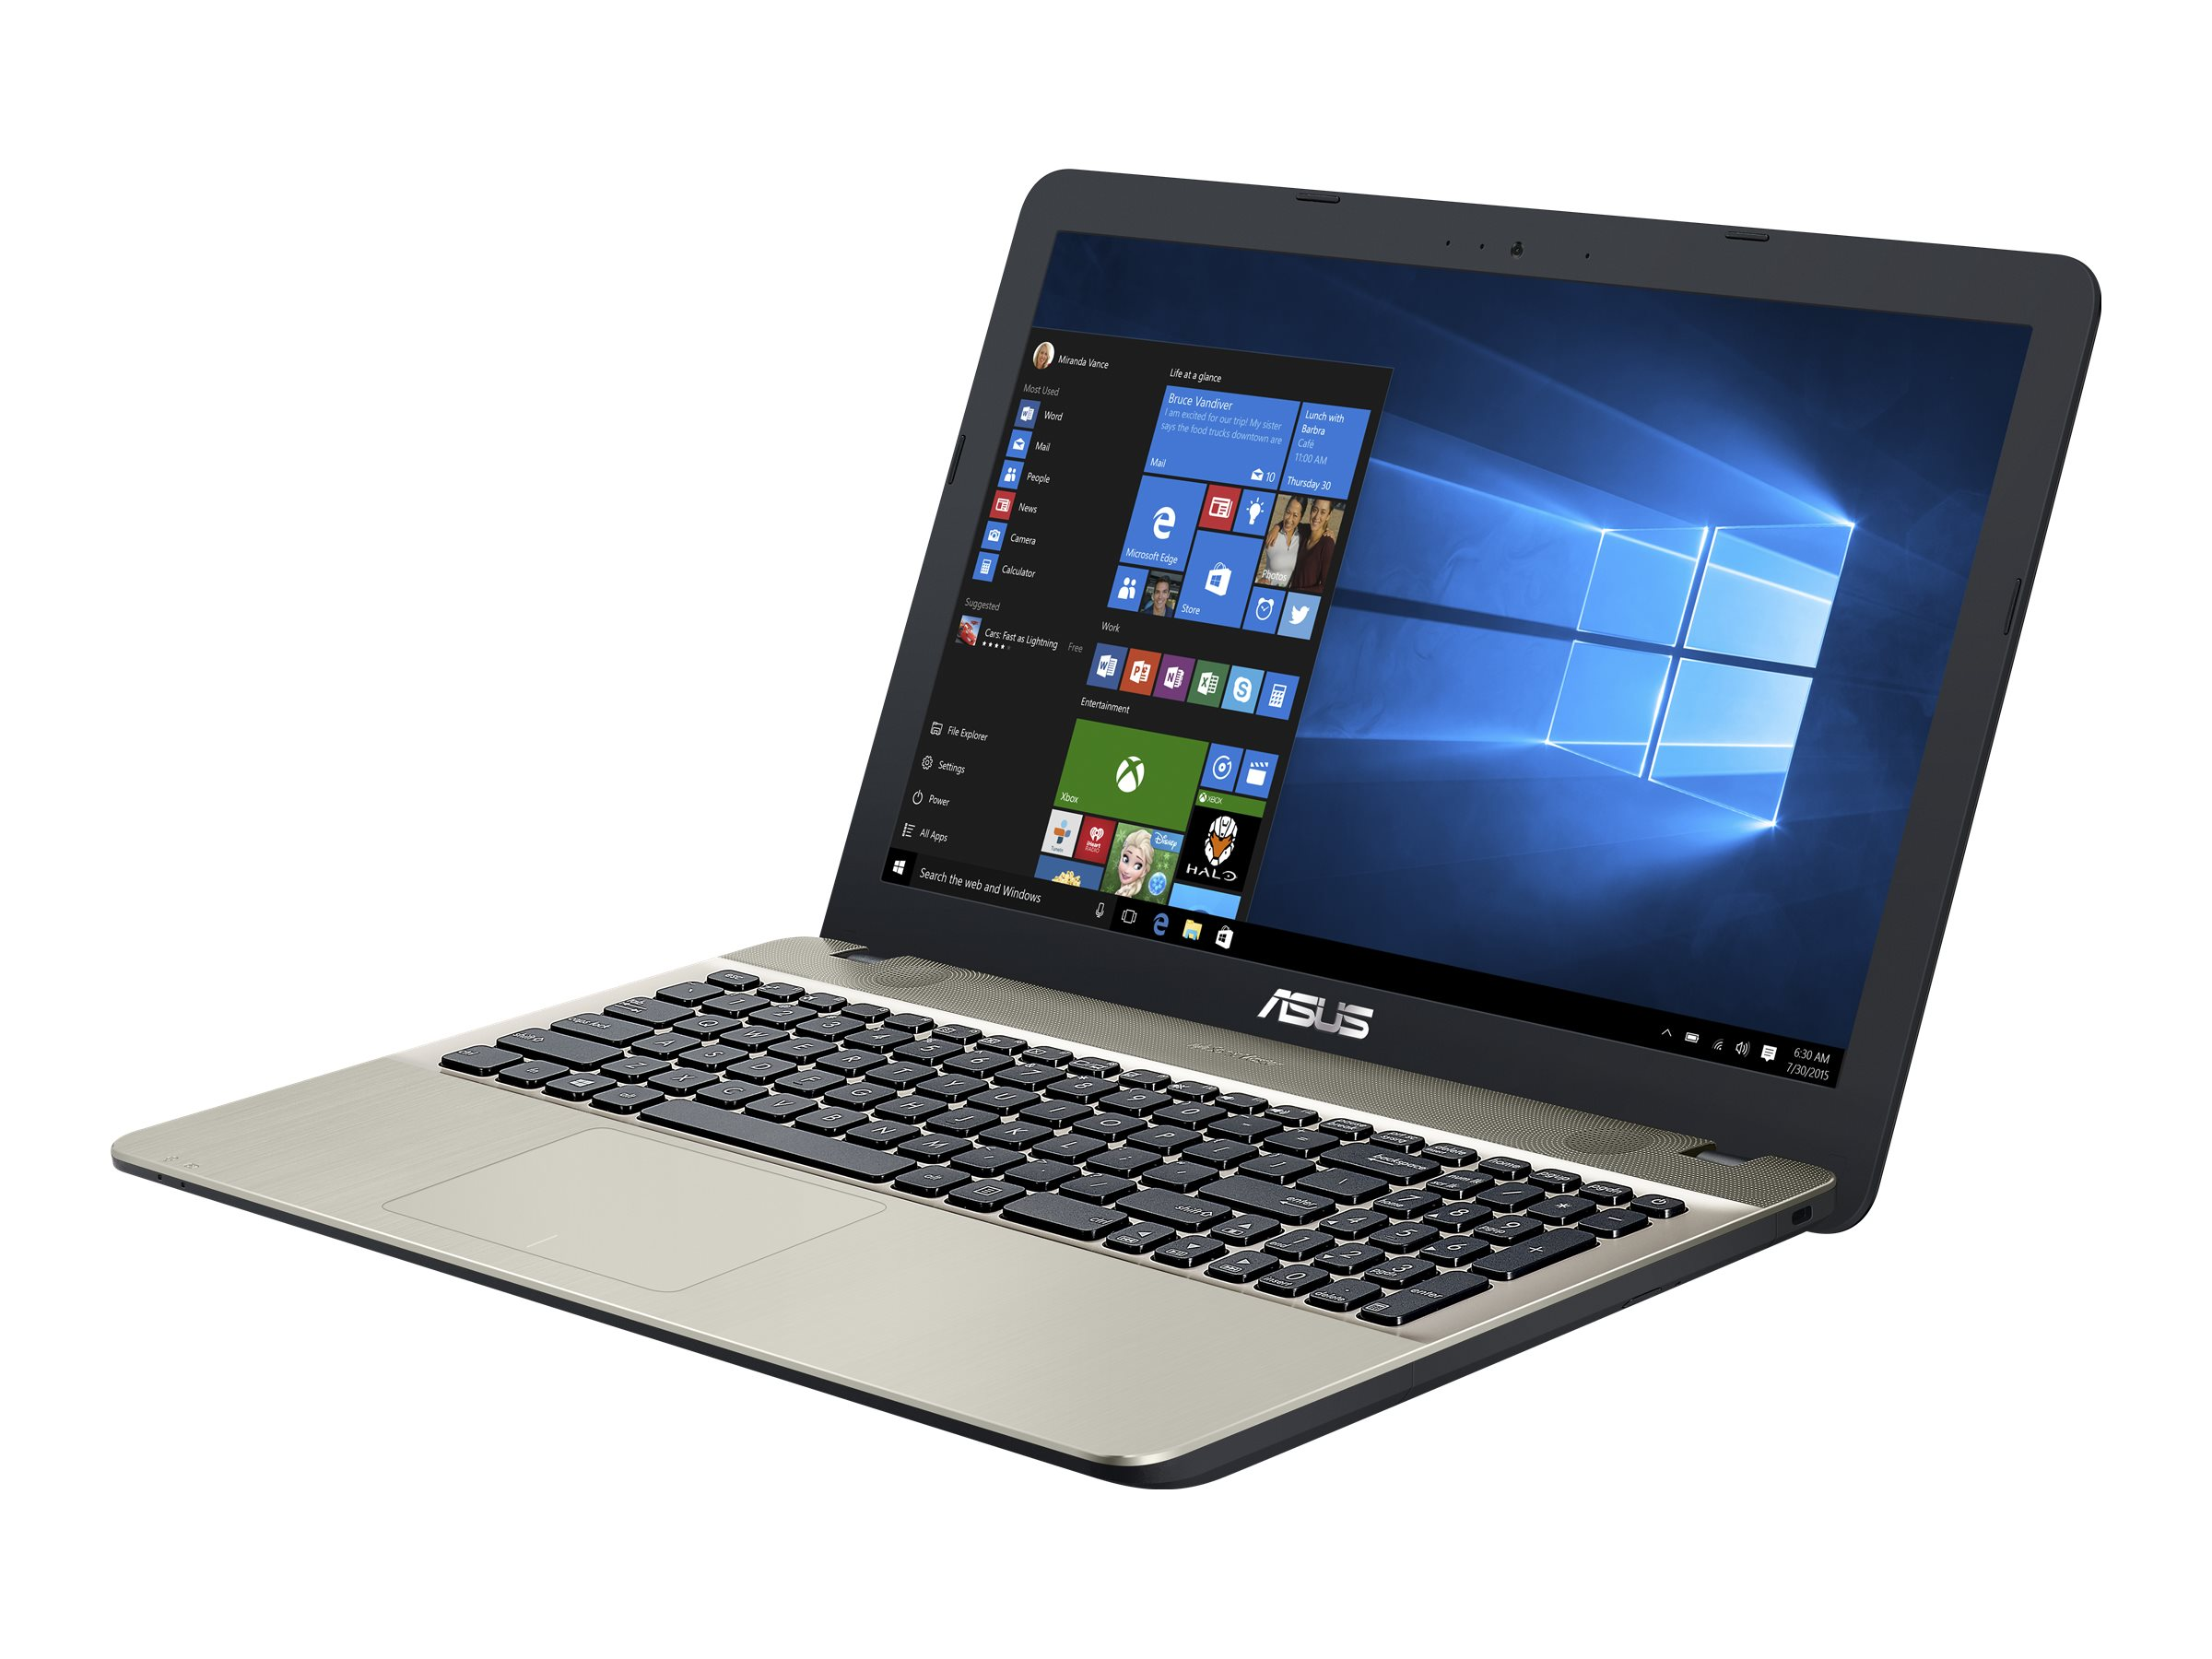 ASUS P541UA DM2003R - Core i3 6006U / 2 GHz - Win 10 Pro 64-Bit - 8 GB RAM - 1 TB HDD - DVD SuperMulti